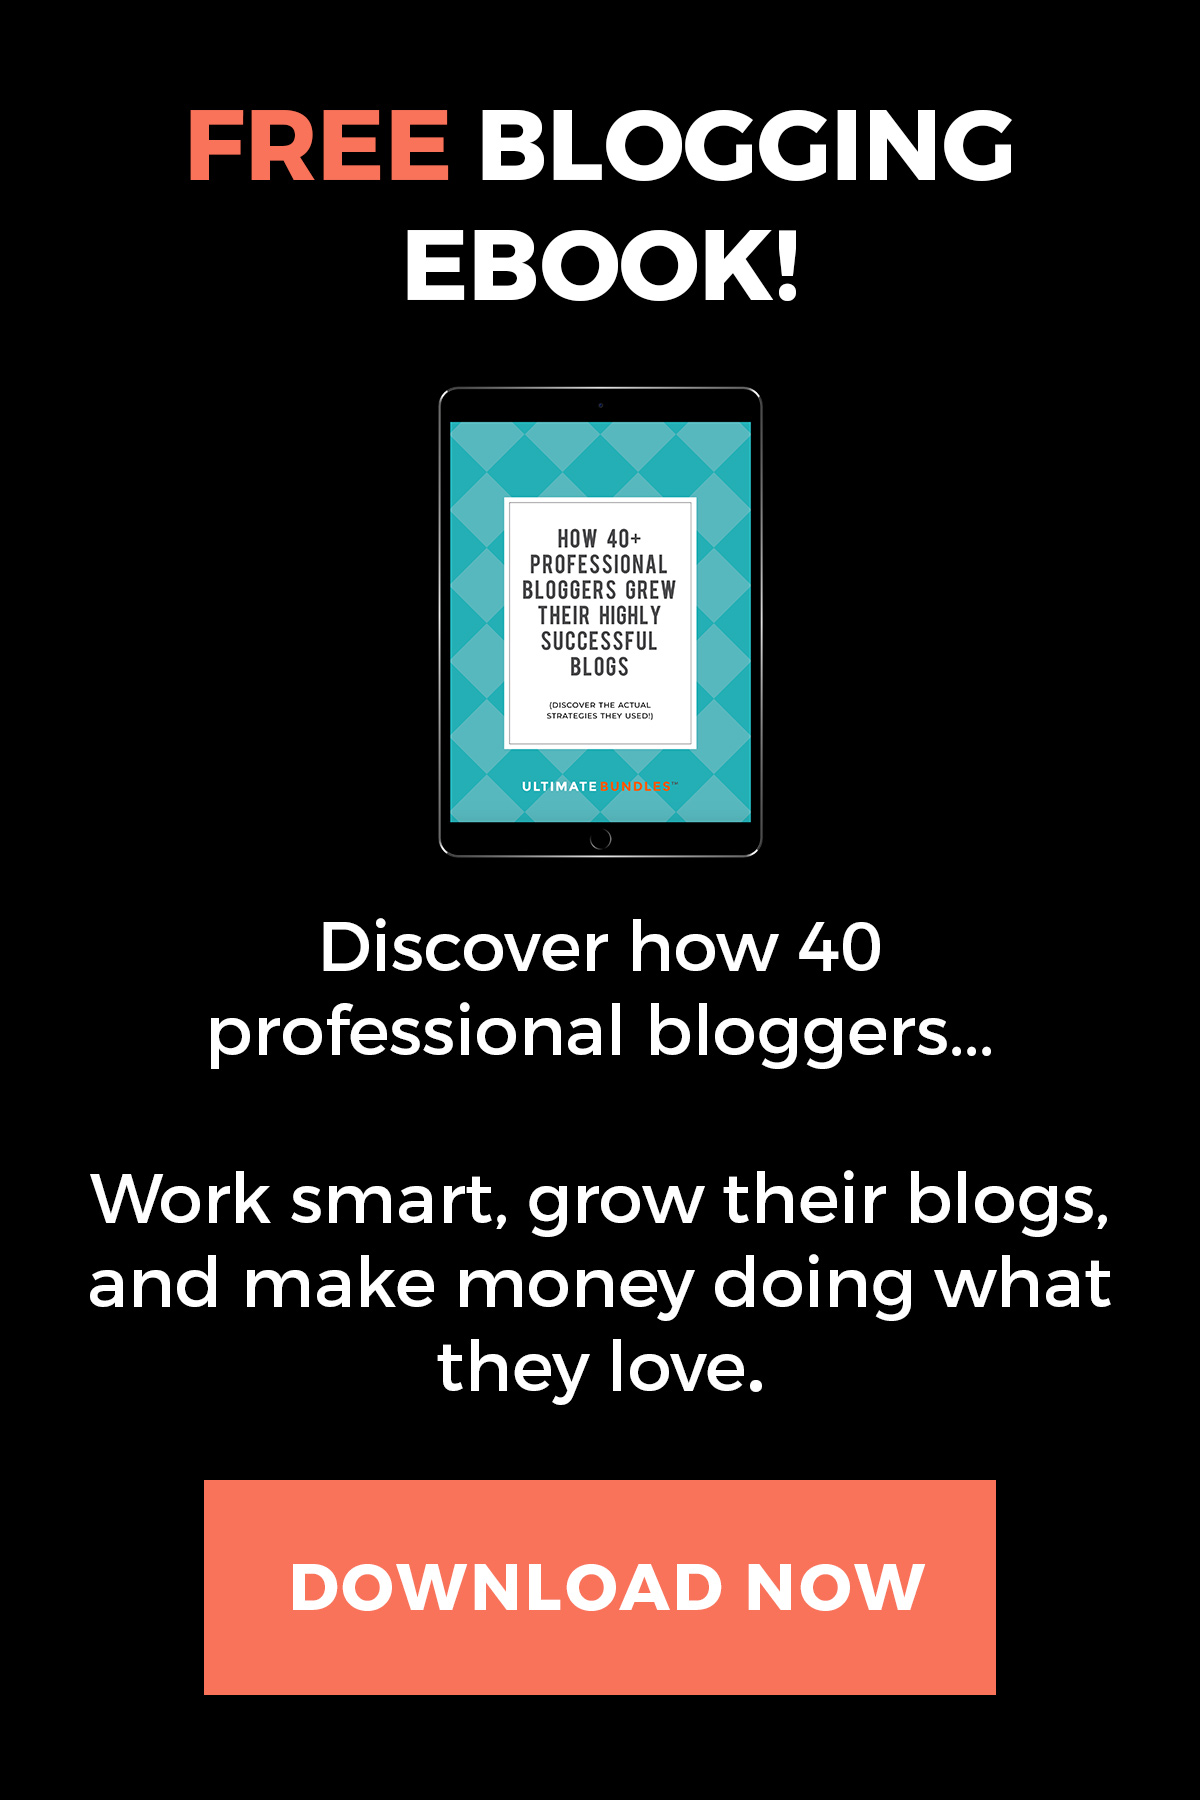 GENIUS BLOGGER'S TOOLKIT 2018 LAUNCHING SOON – GRAB THIS FREE BLOGGING E-BOOK